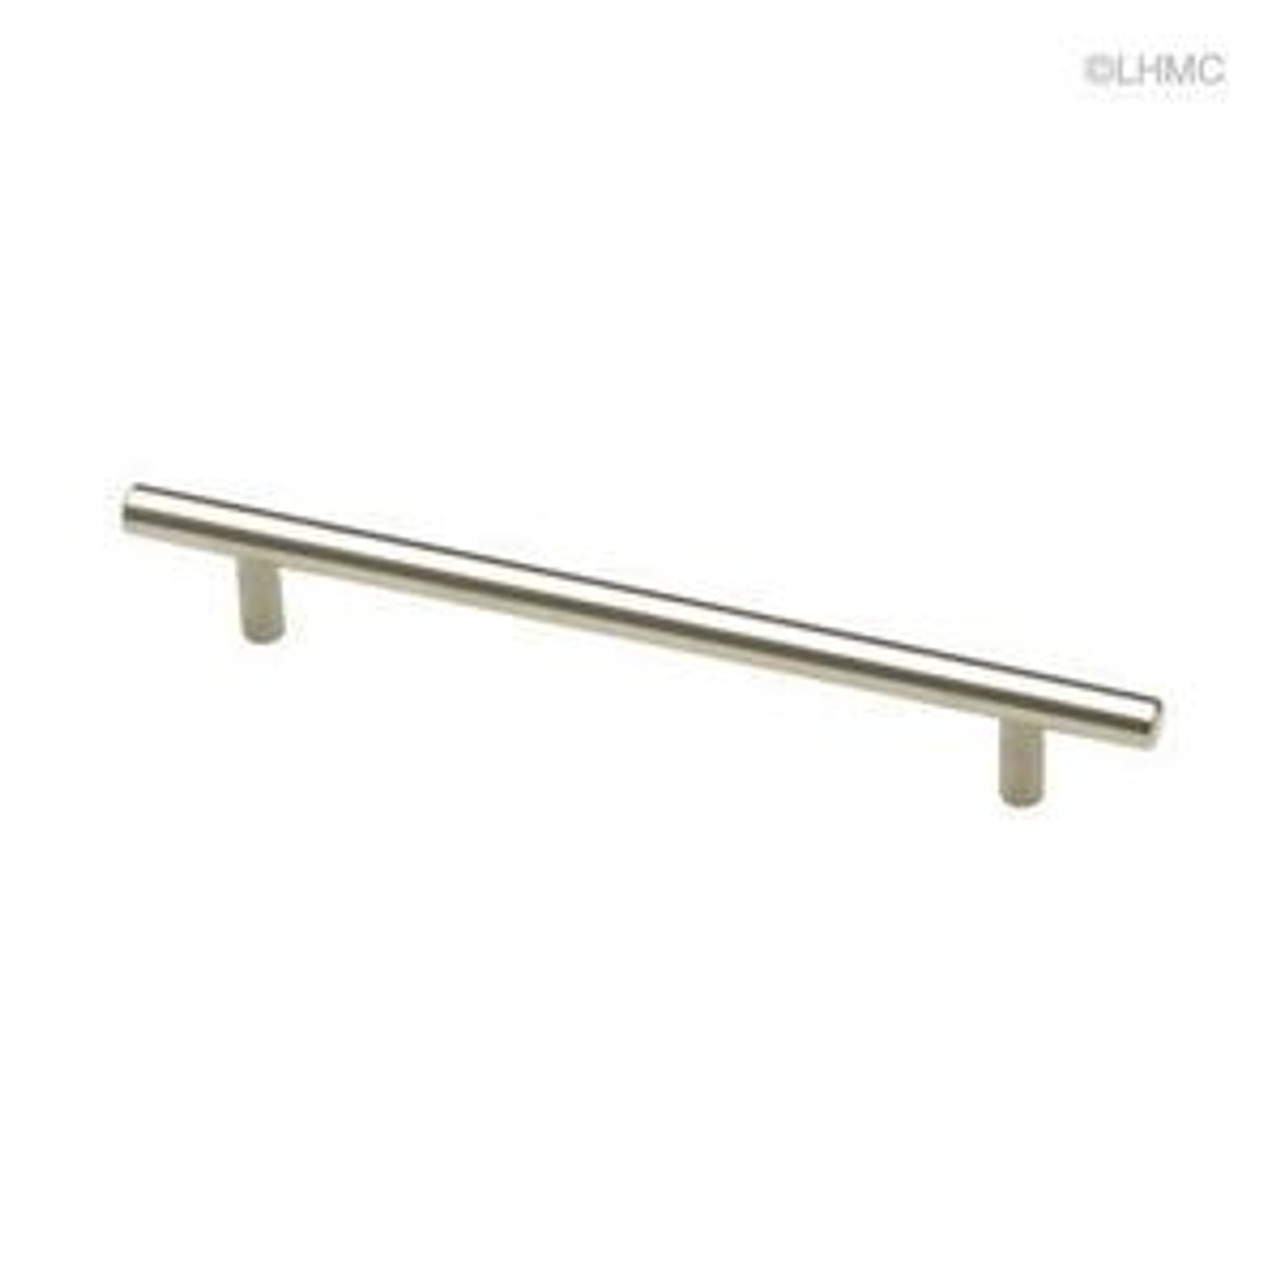 "P01013C-SS Stainless Steel Bar Cabinet Drawer Pull Knob 6 1/4"" Centers"